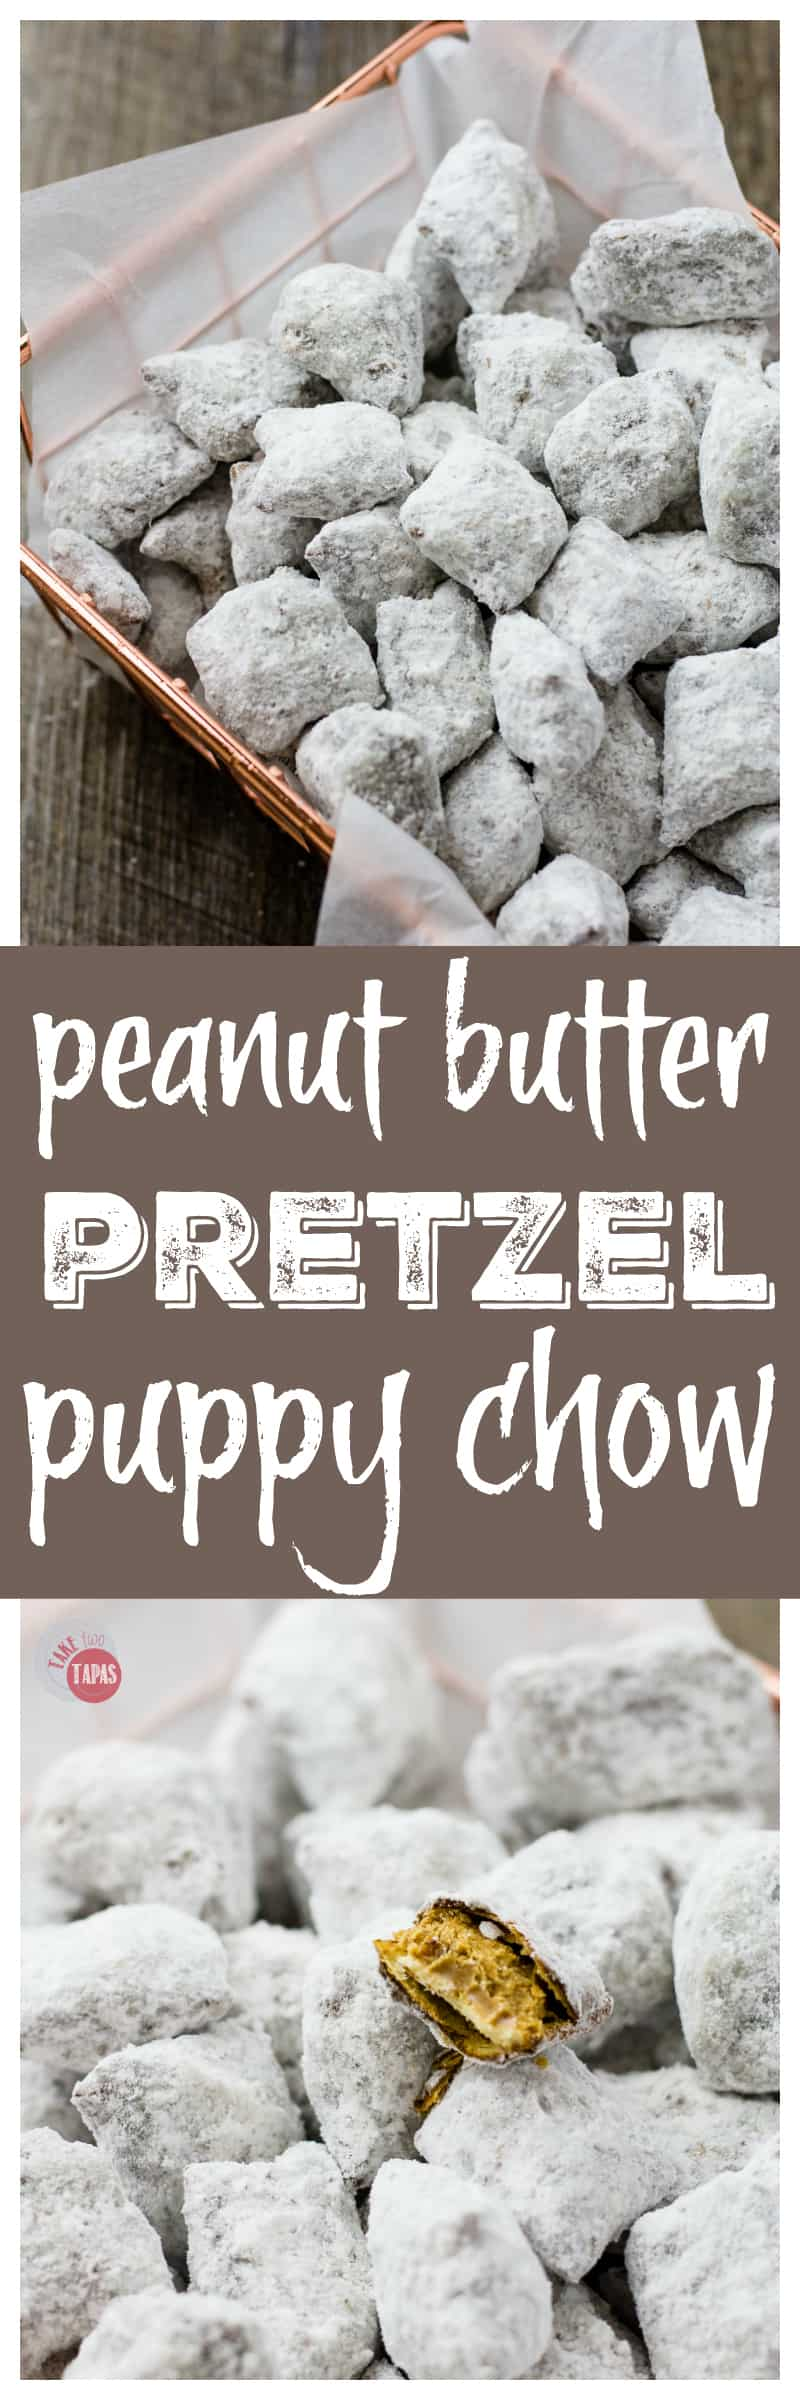 You haven't tasted anything this delicious in a long while. Peanut Butter Pretzel Puppy Chow | Take Two Tapas #PeanutButterPretzel #PuppyChow #PretzelNuggets